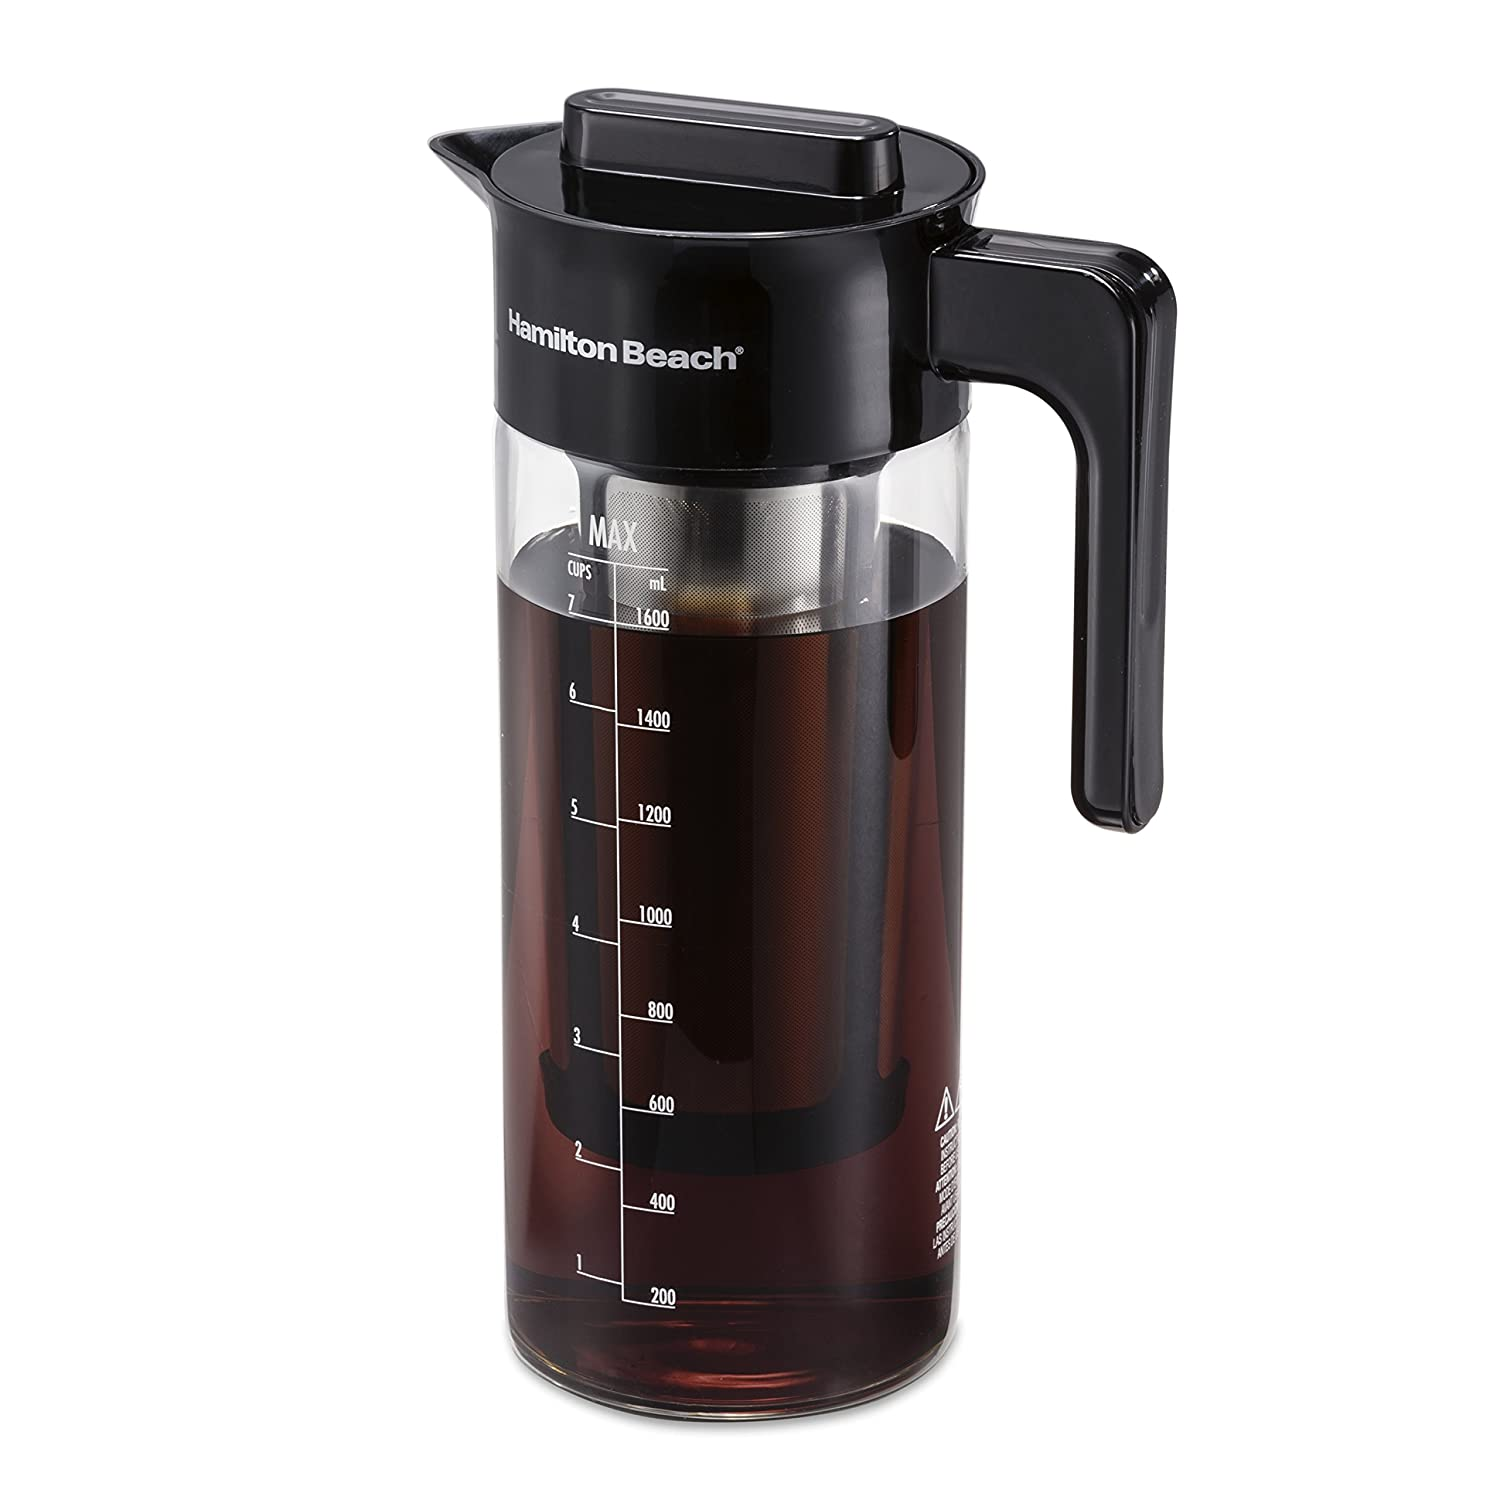 Hamilton Beach 40405R Cold Brew Coffee Maker 57 oz/1.7 L